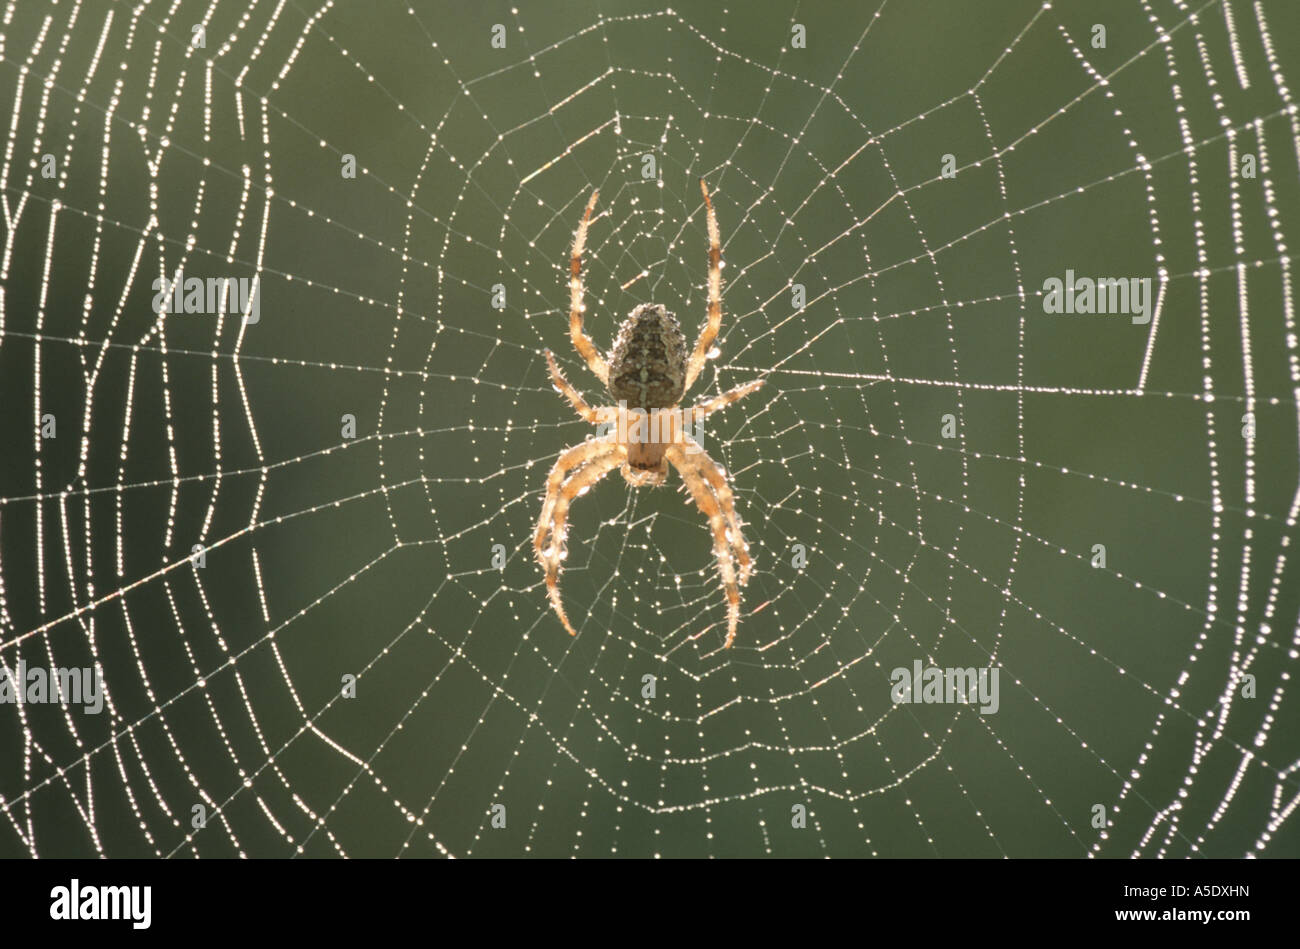 cross orbweaver, European garden spider, cross spider